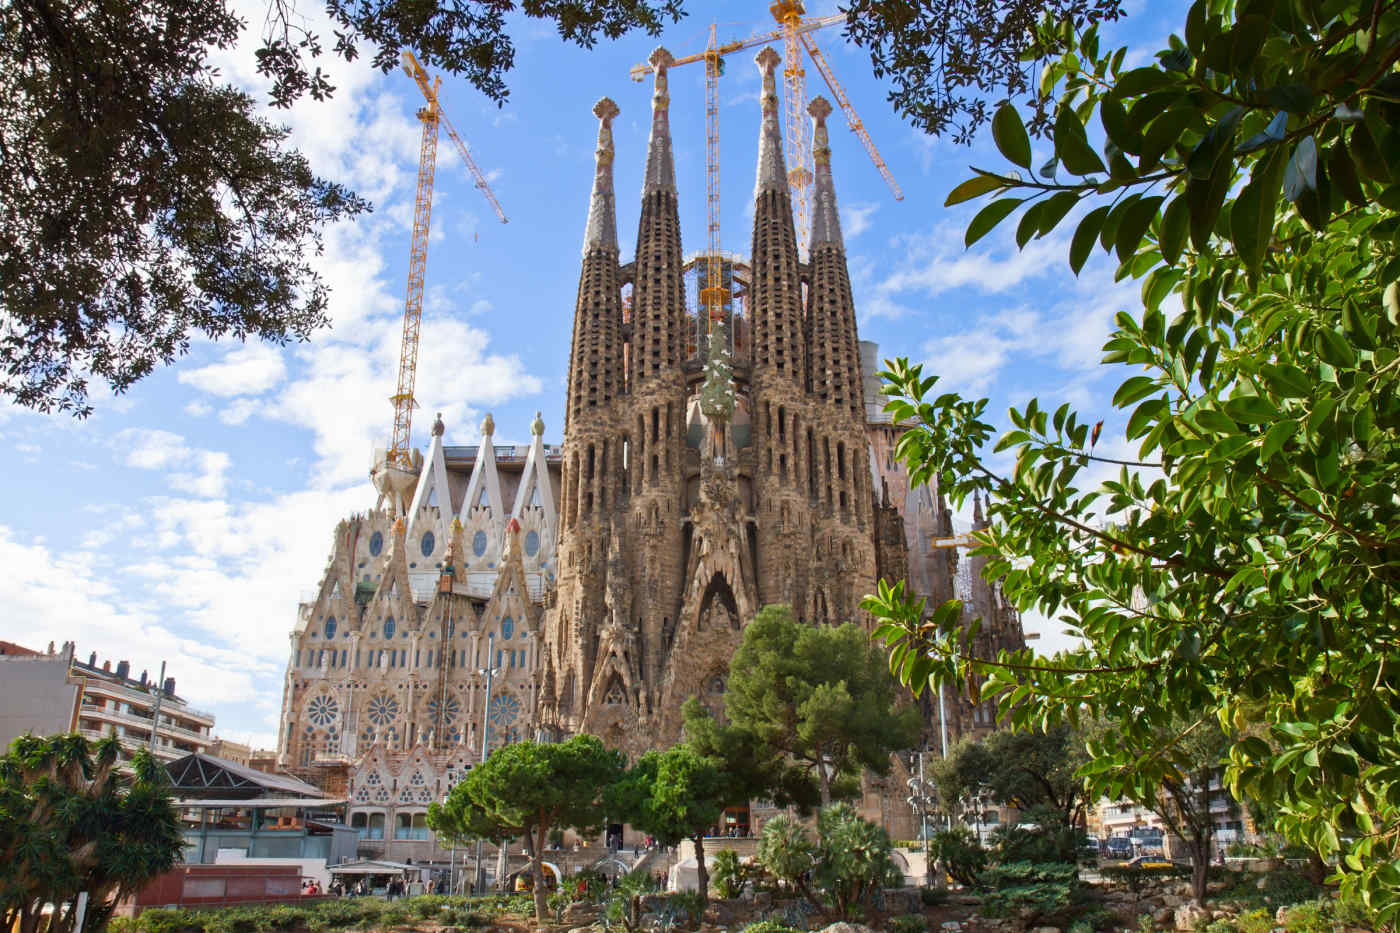 La Sagrada Familia • Barcelona, Spain